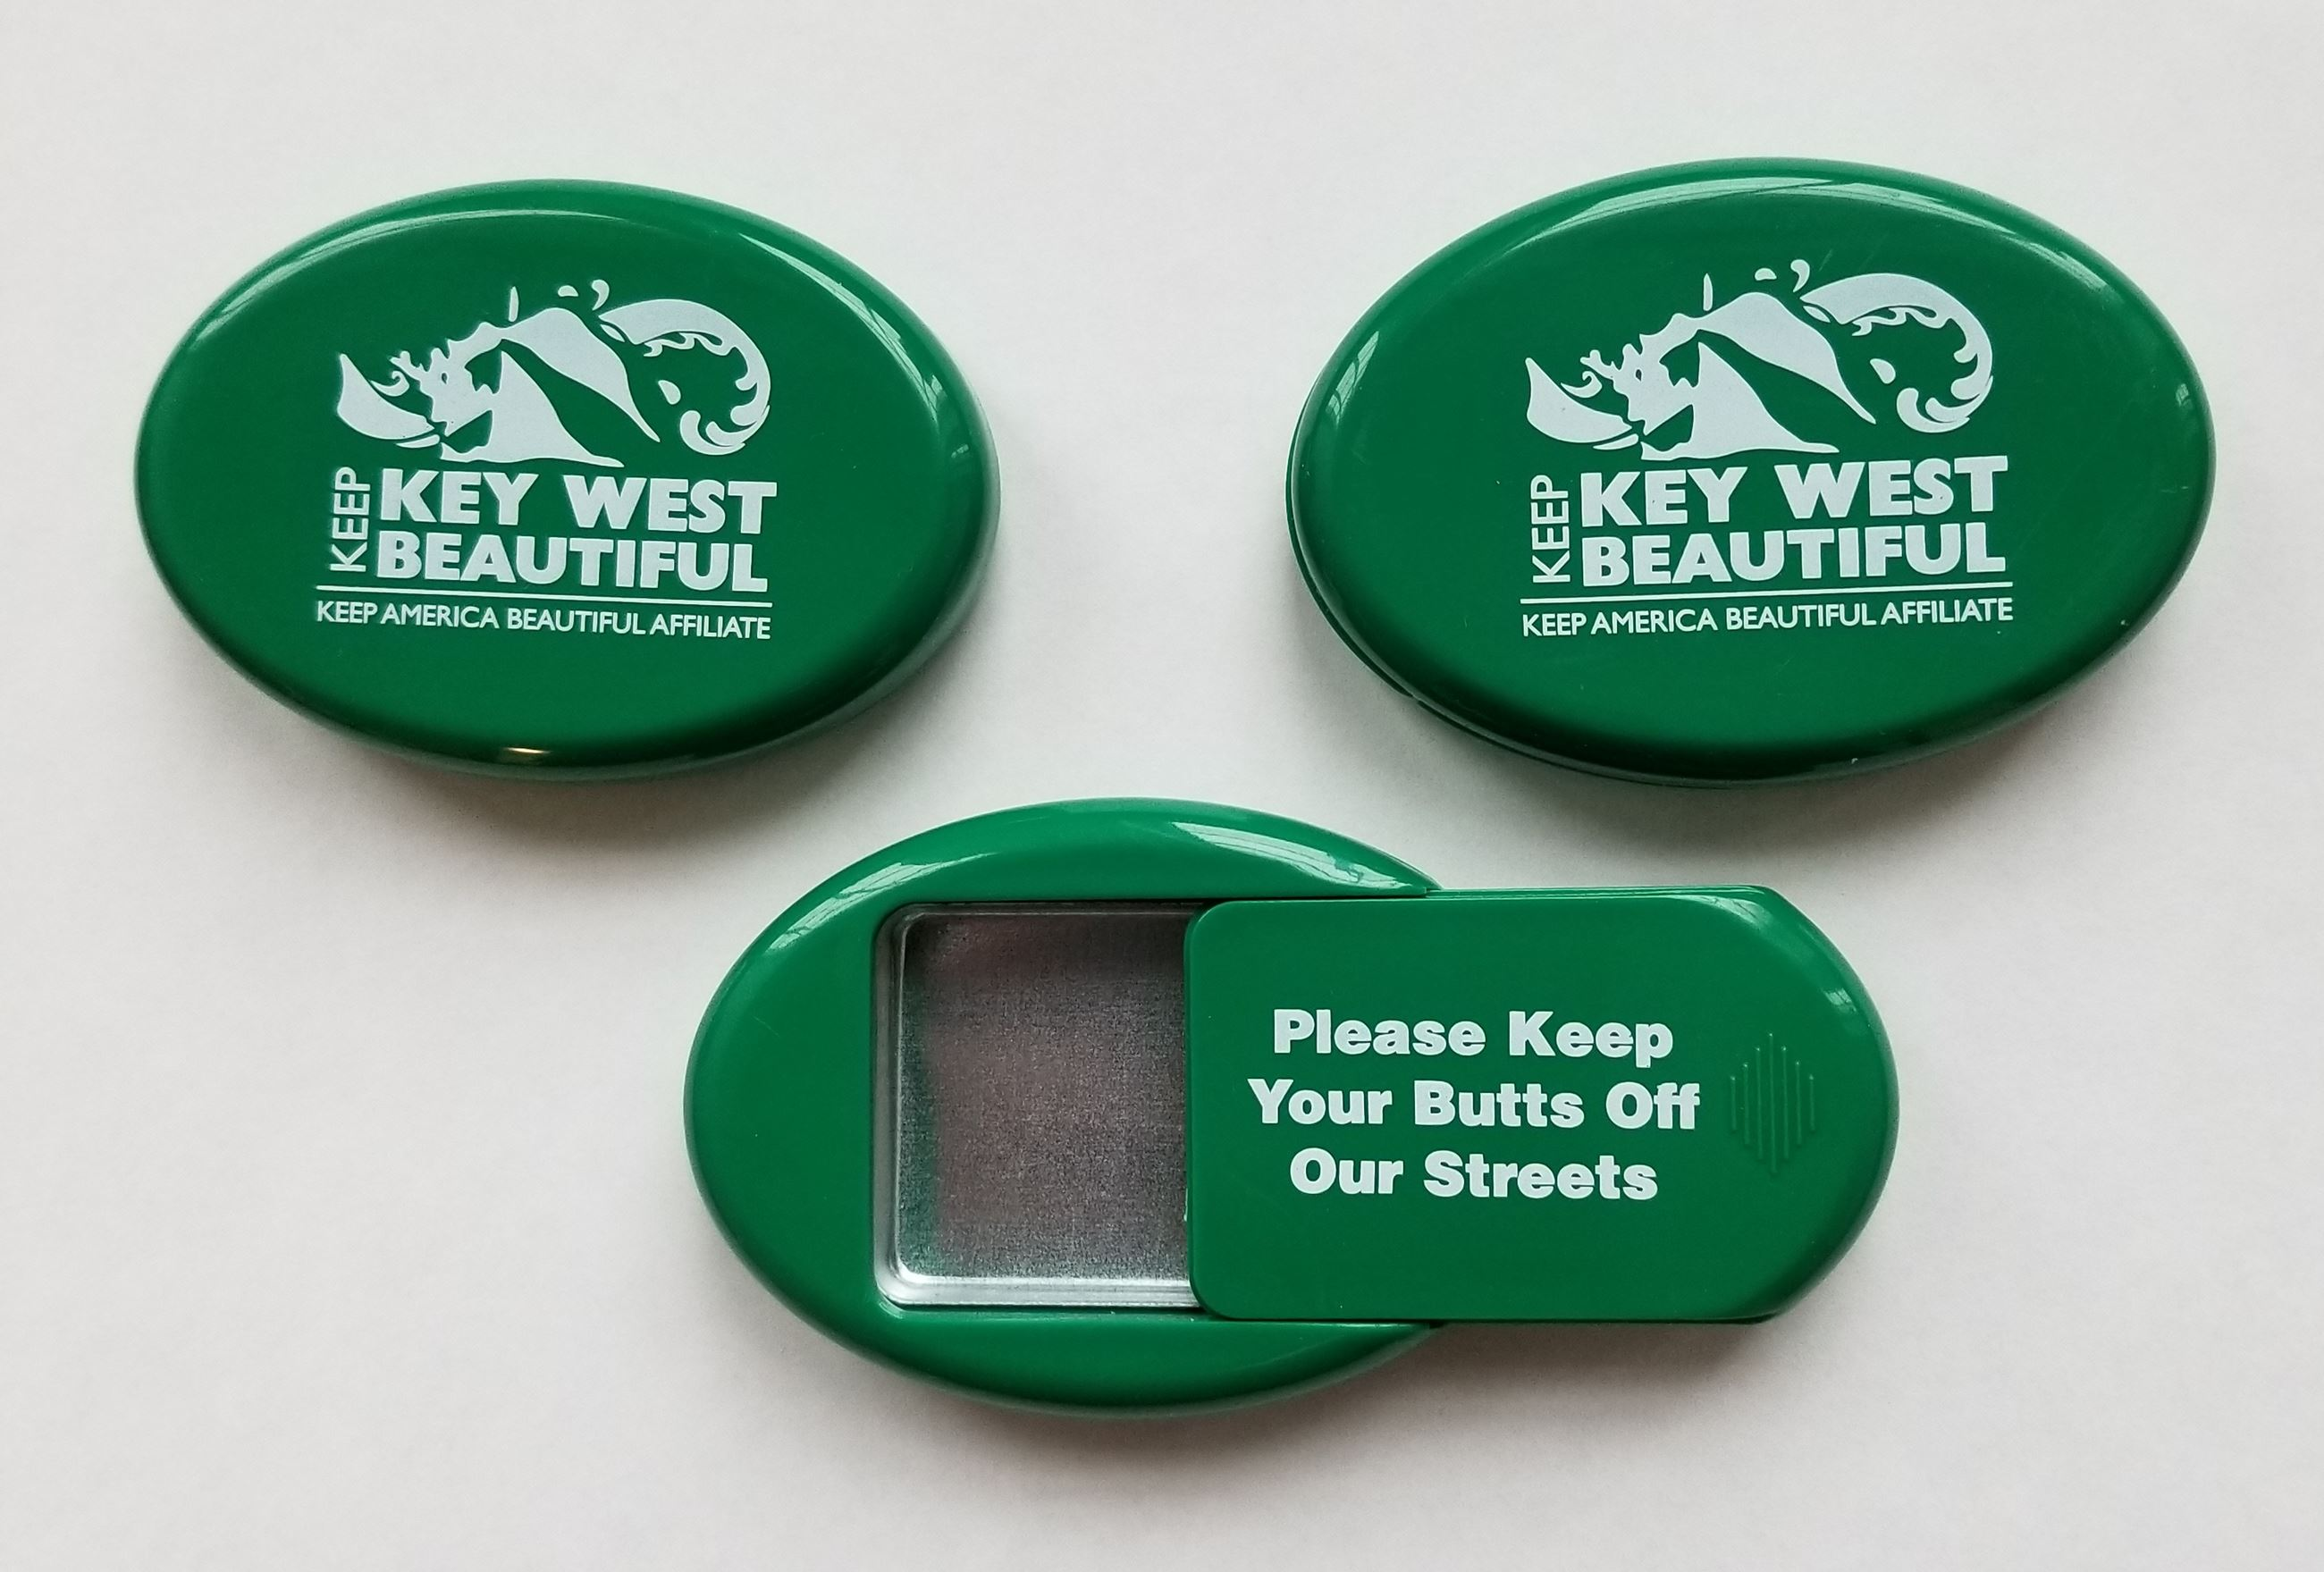 Keep Key West Beautiful Cigarette Butt Holder